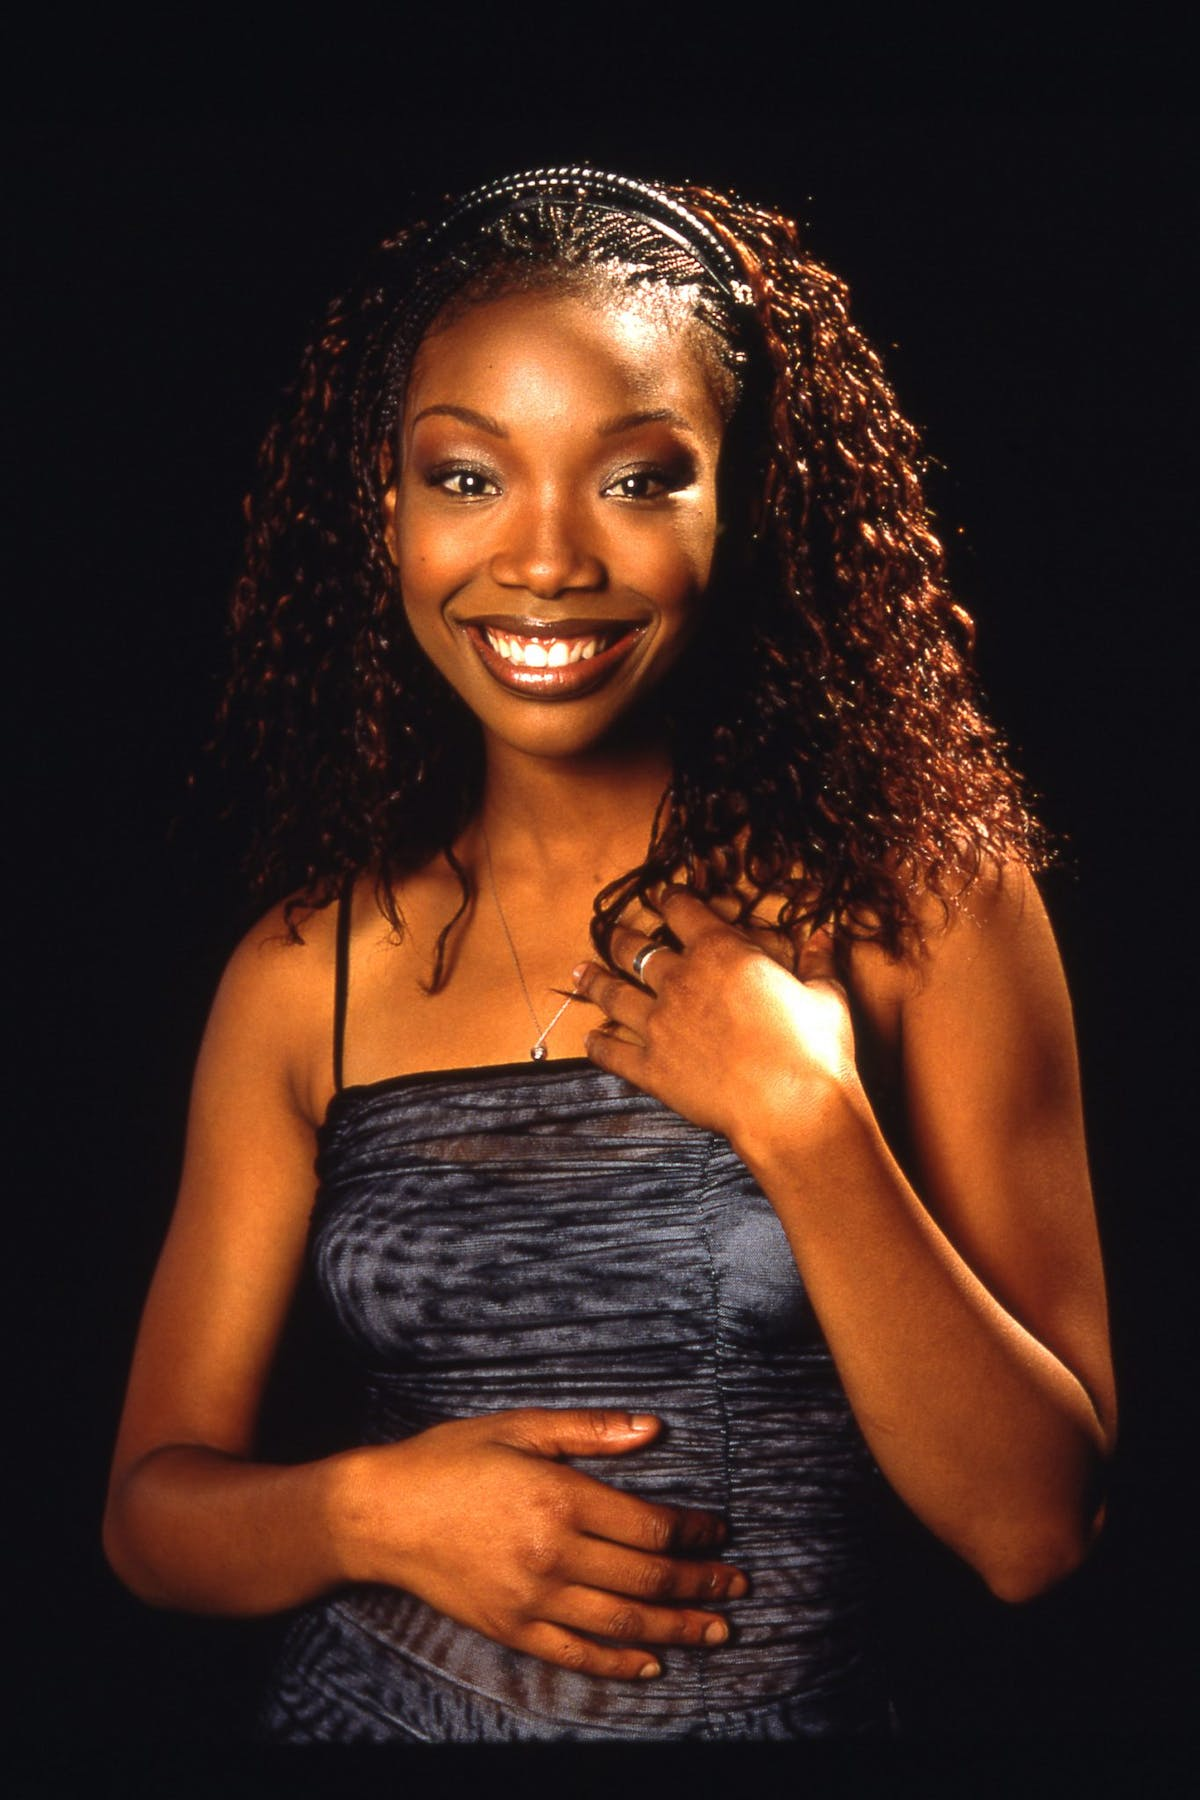 Black Hairstyles From Janet Jackson To Brandy Most Iconic Looks